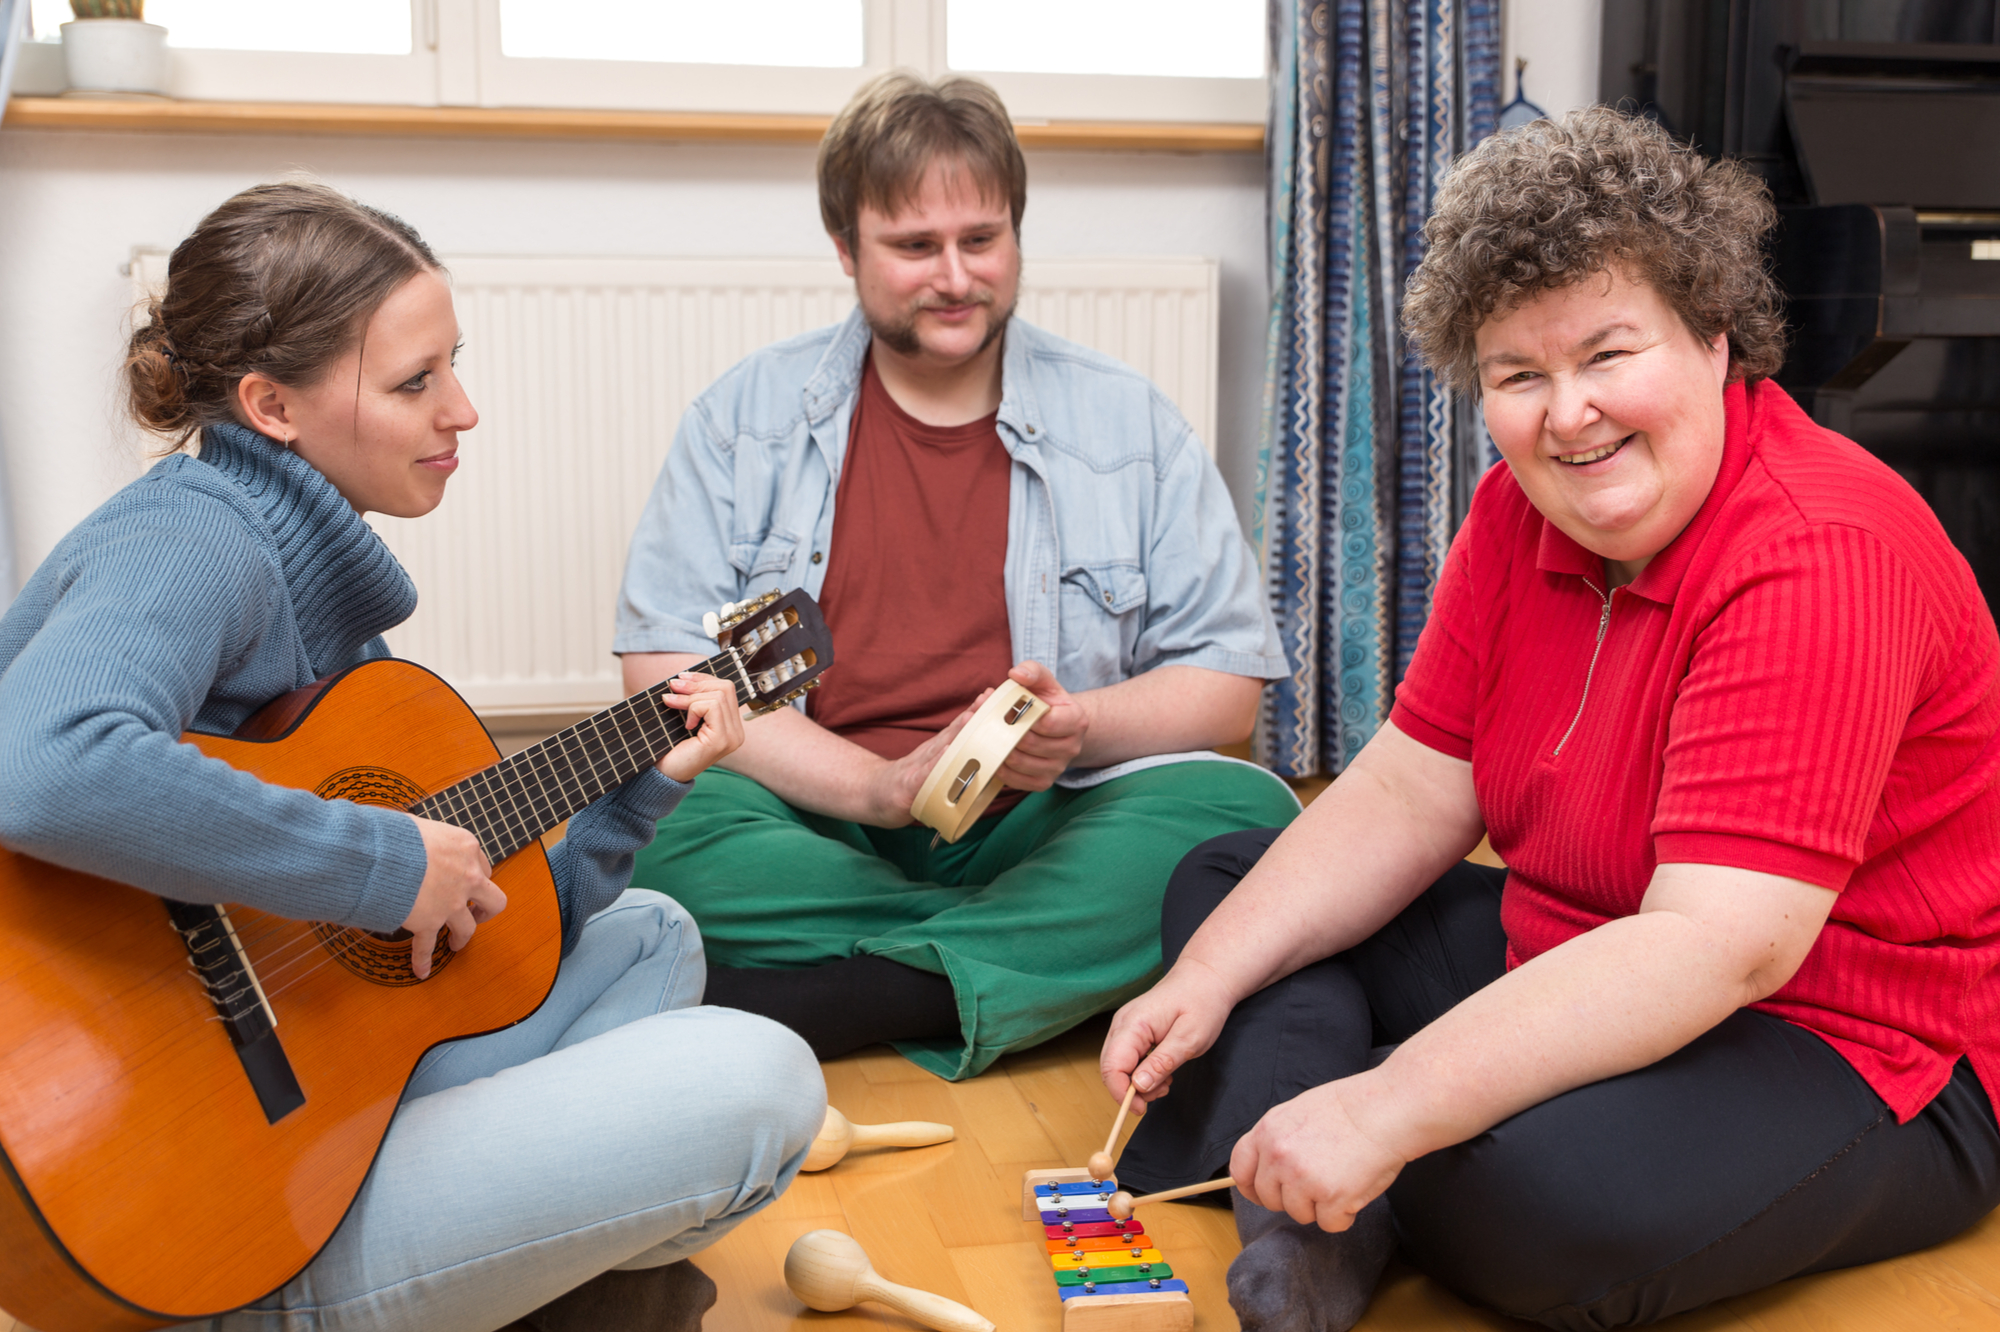 music therapy and mental health group of people healing with music